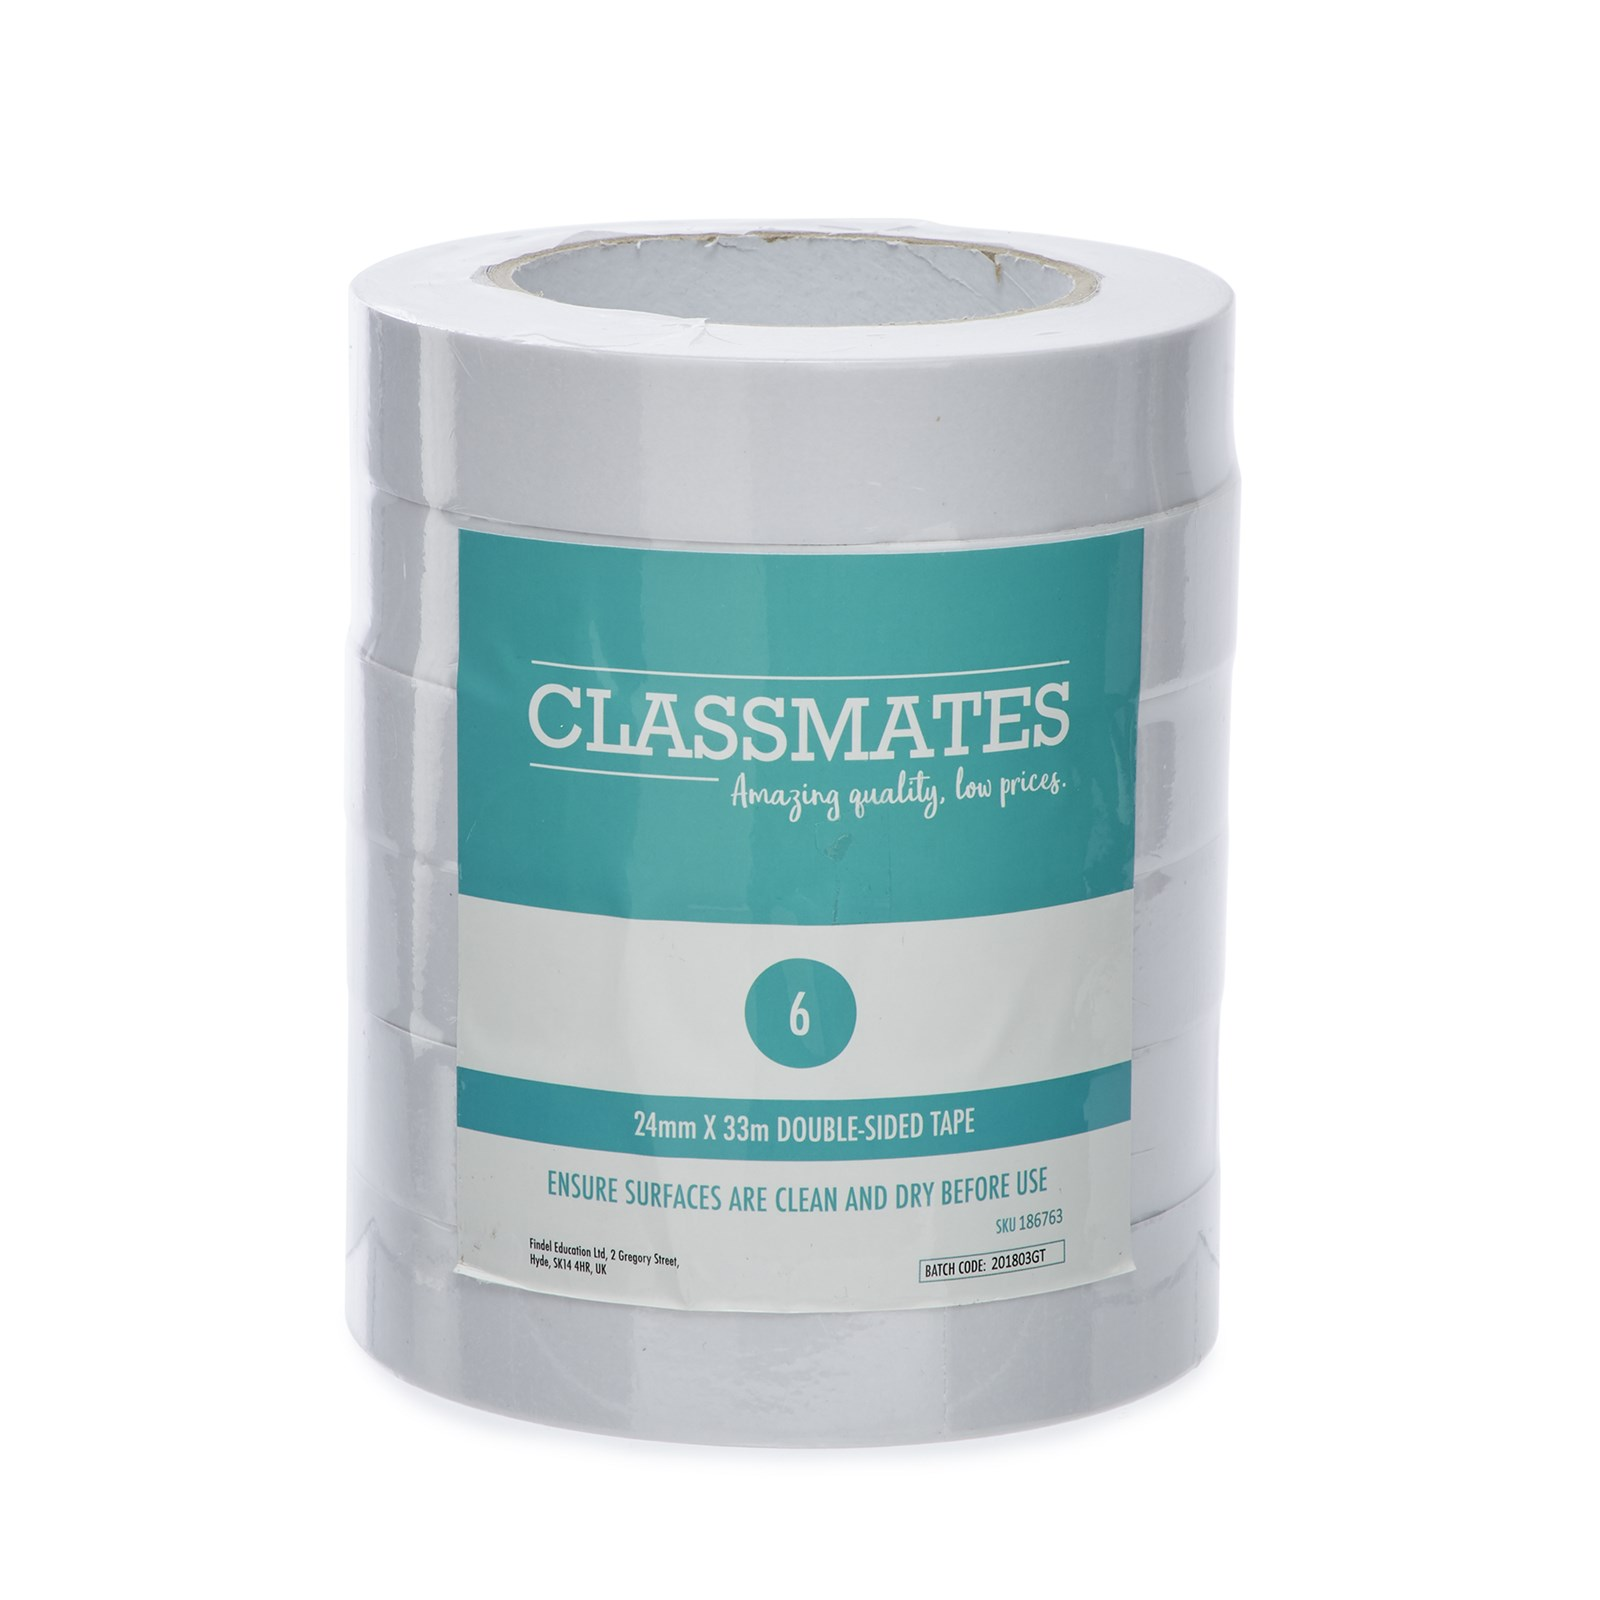 Classmates Double Sided Tape 24mm 33m Pack Of 6 Gls